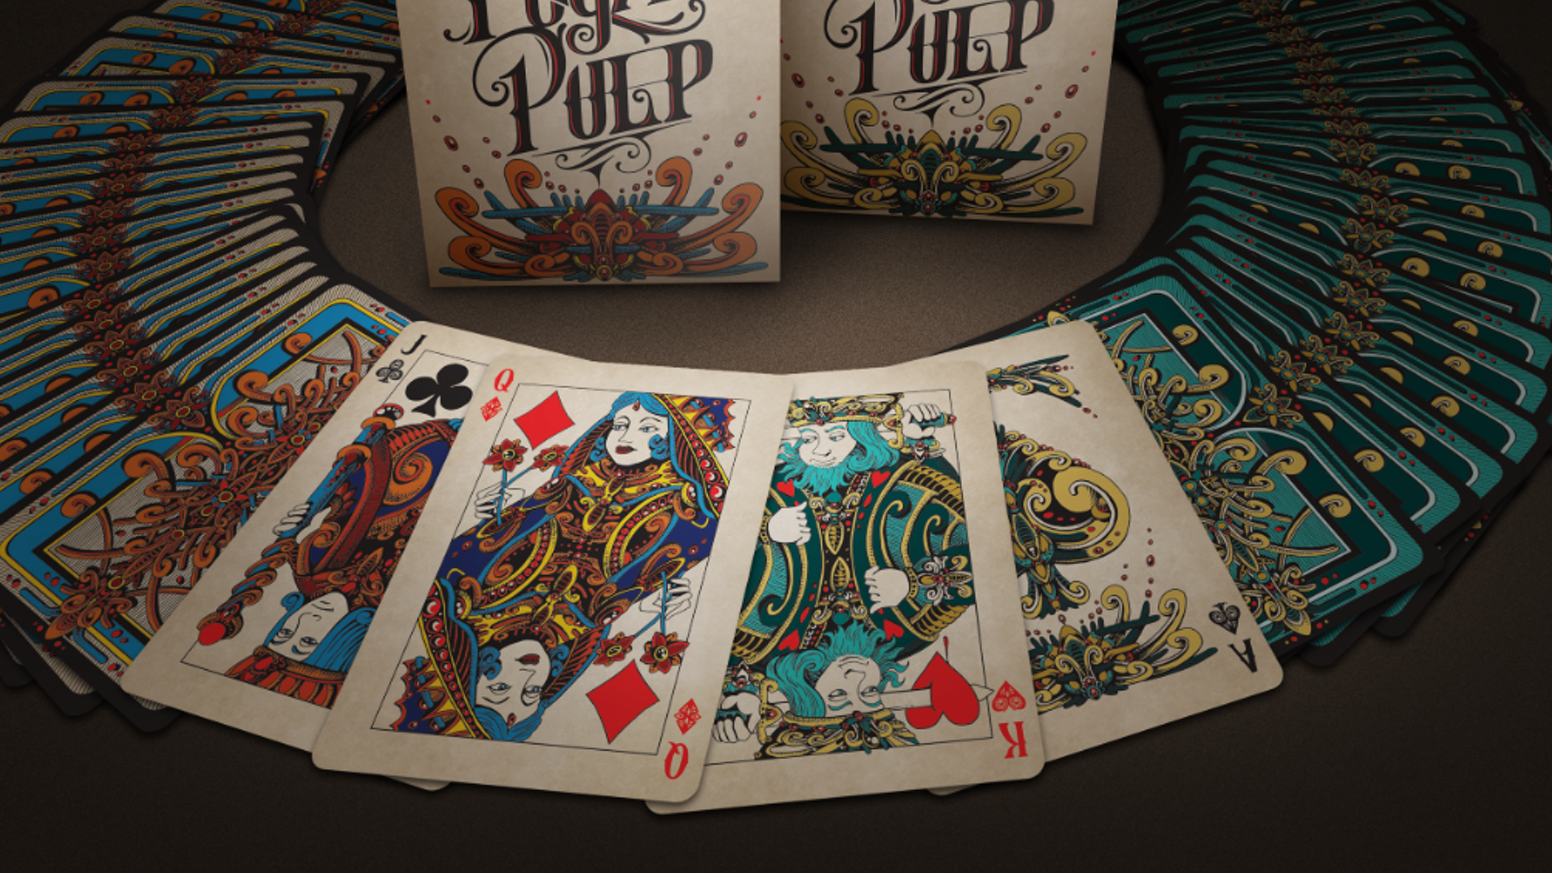 Two beautifully crafted custom playing cards decks. Featuring brightly colored illustrations & gorgeous typography.